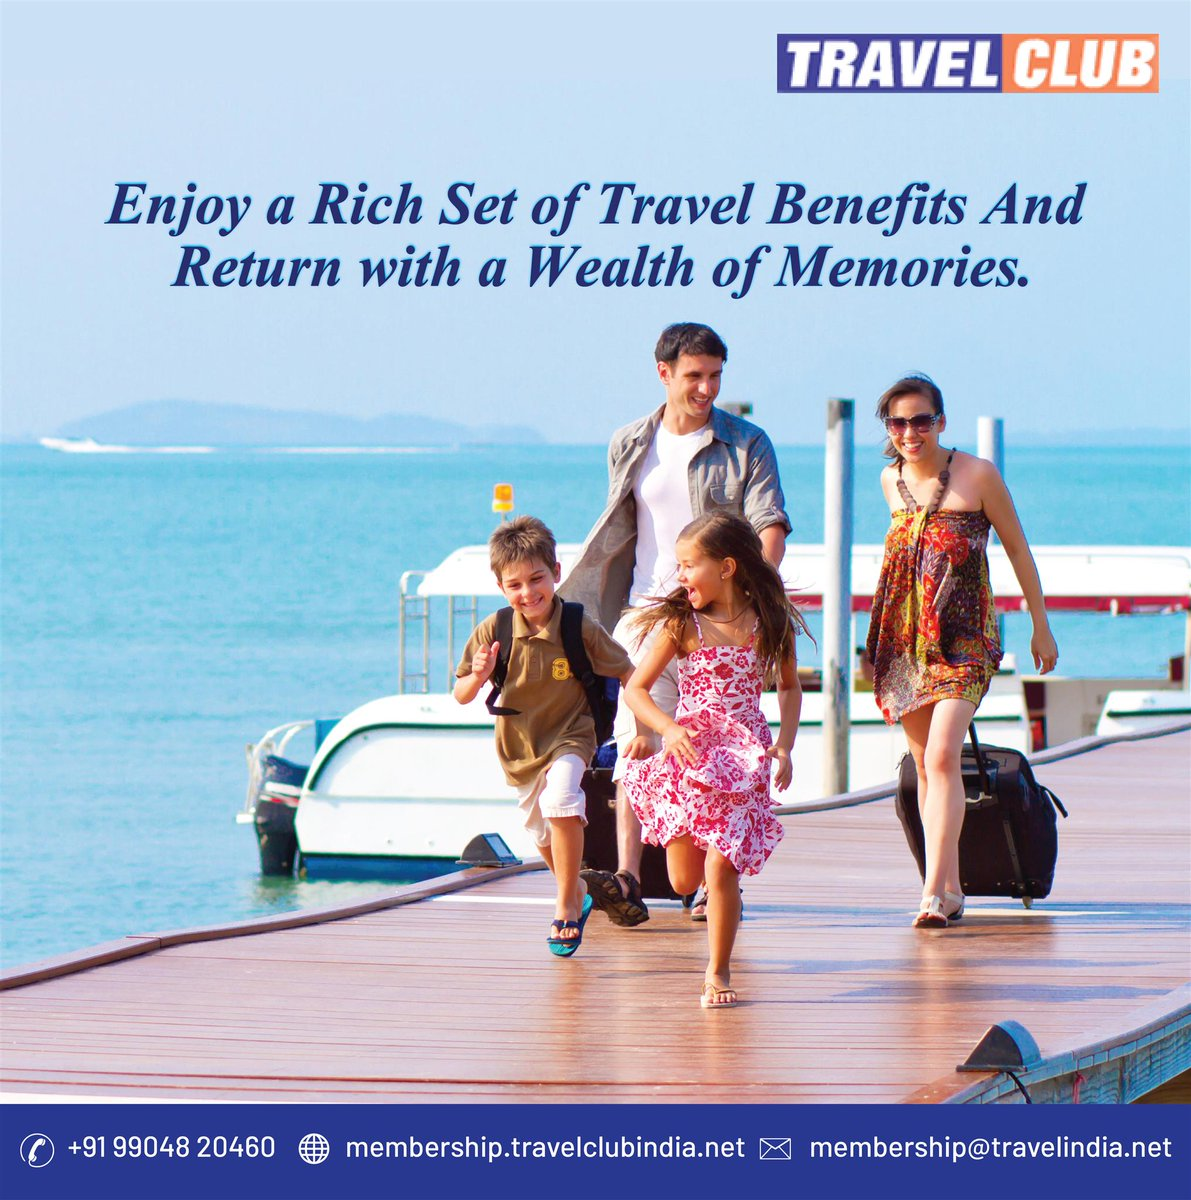 Enjoy your vacation with a travel club and come with joy and joyful experience.  Contact Us for more details Website :  http:// membership.travelclubindia.net     Mail id – membership@travelindia.net Mobile : +91 990 4820 460  #TravelClubMembership <br>http://pic.twitter.com/4E4Lb1mvkC